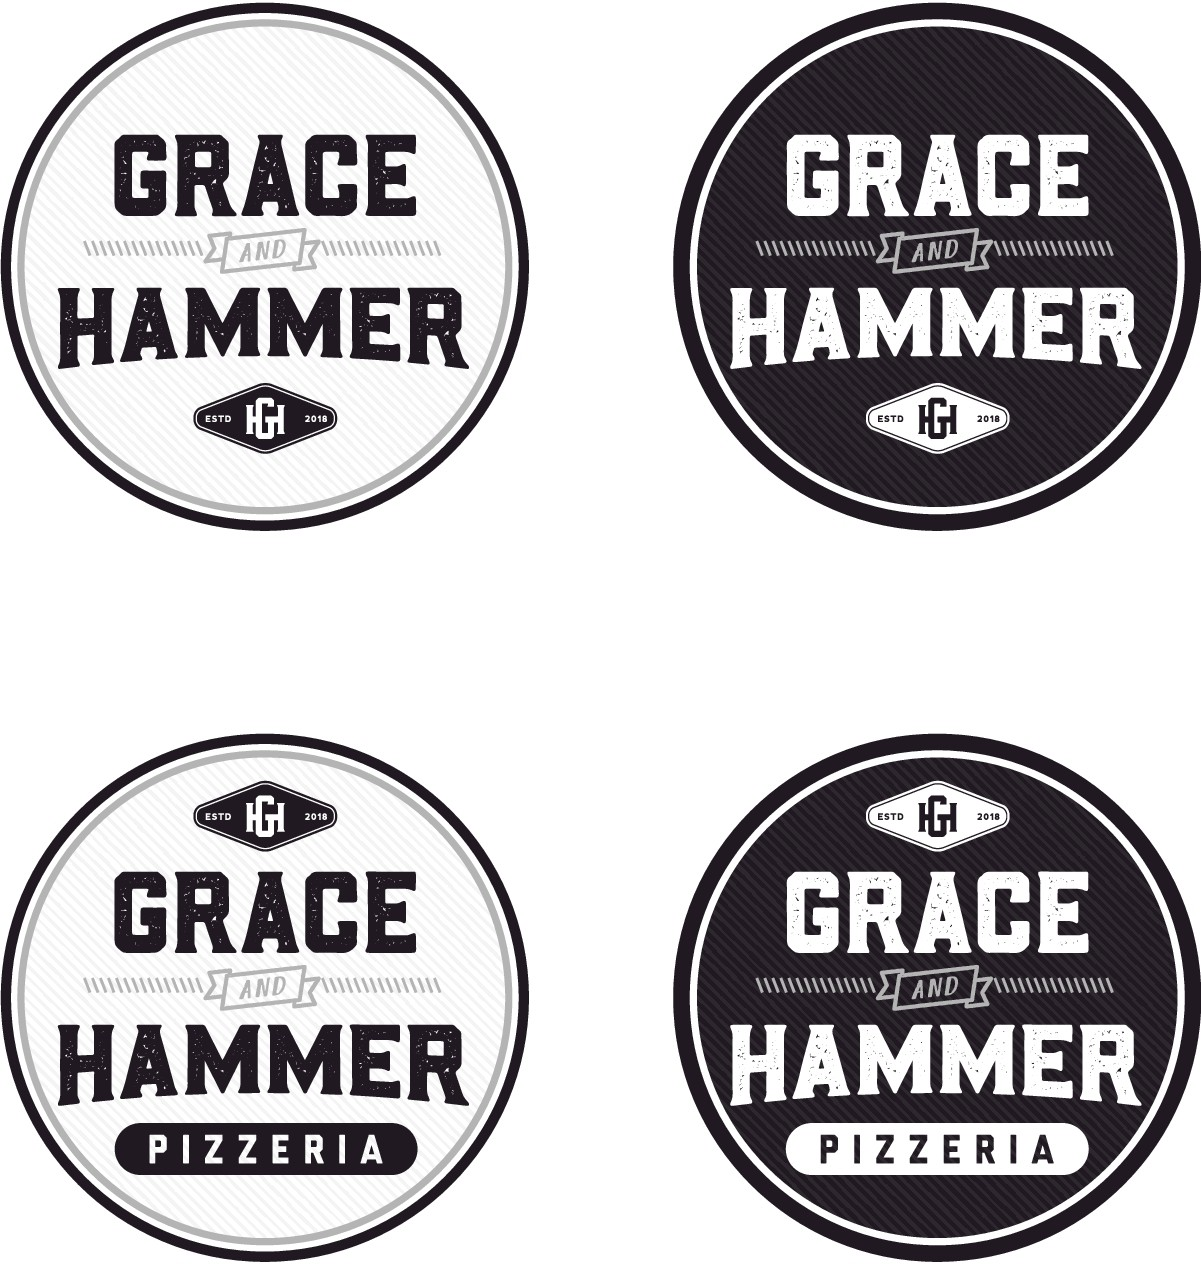 Grace and Hammer